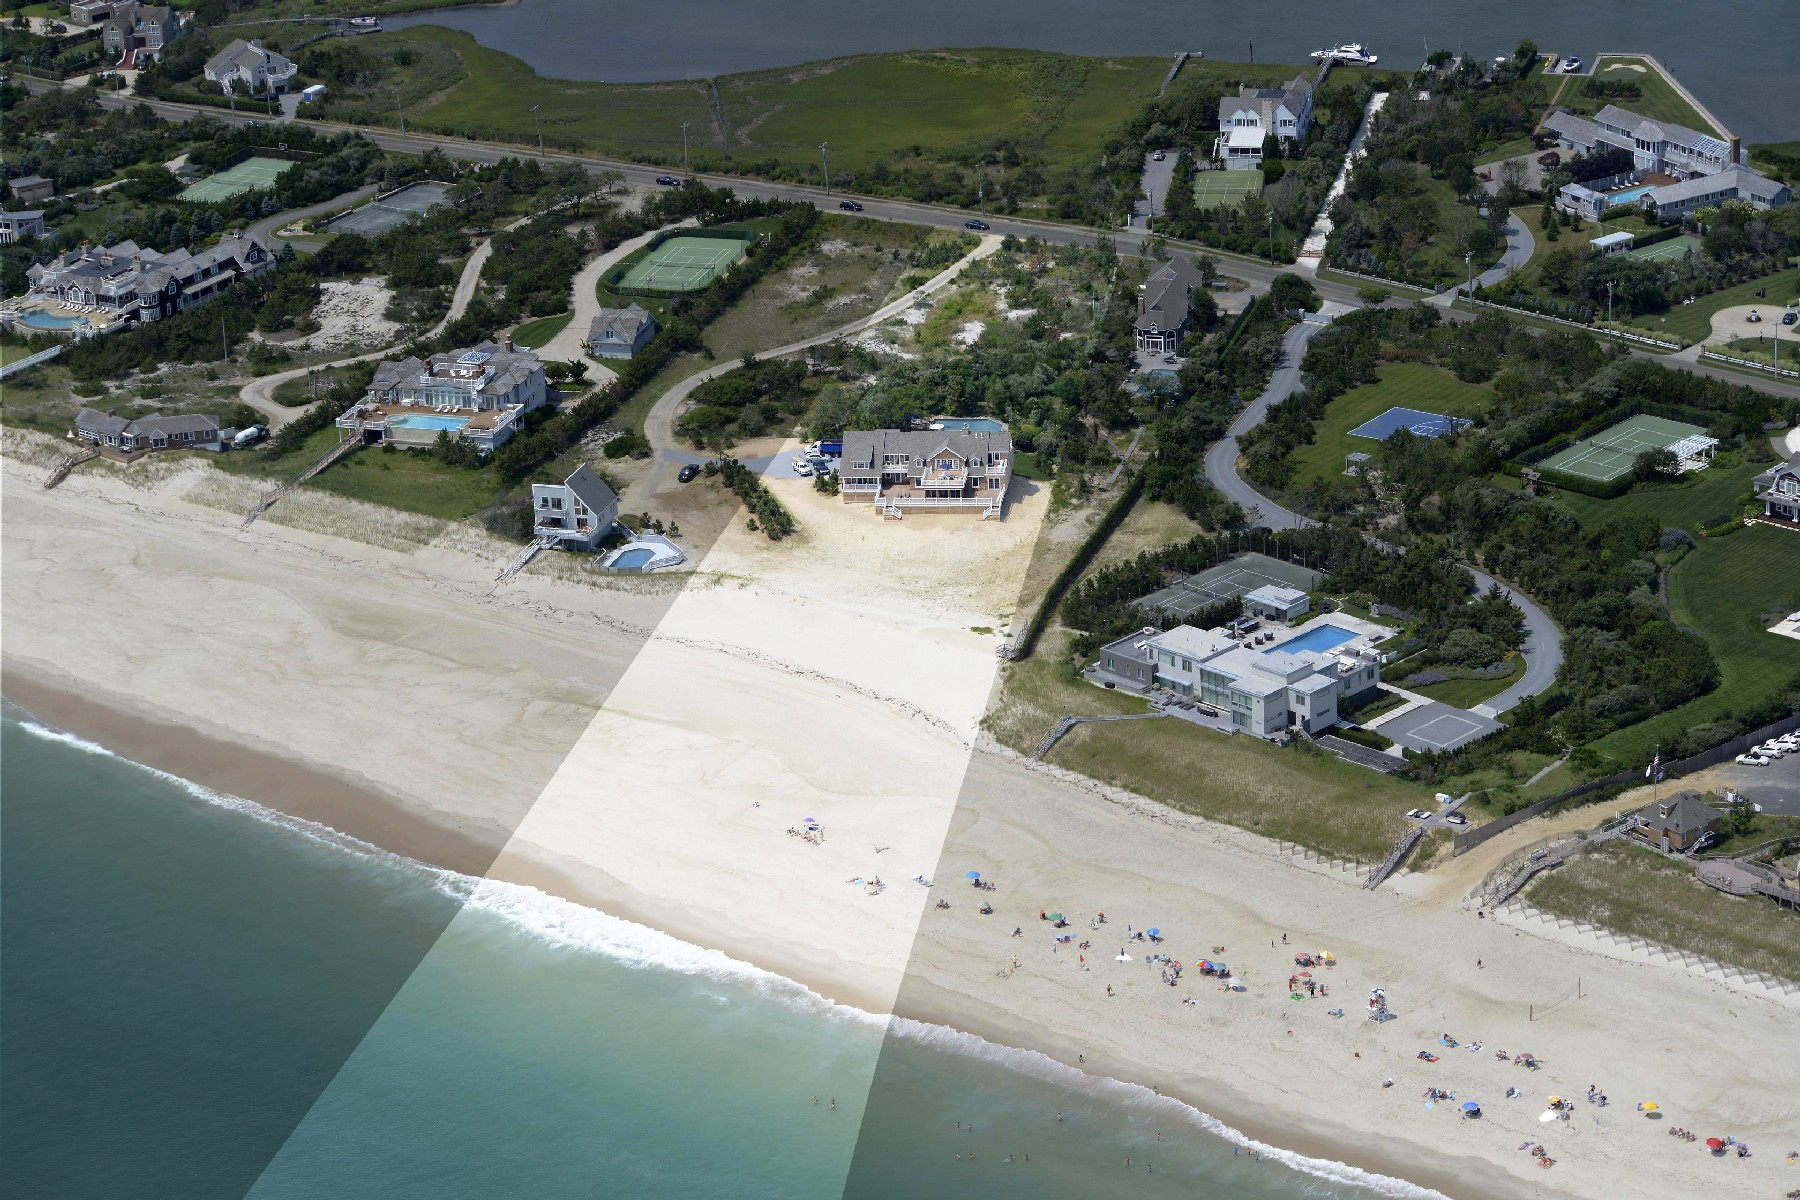 Single Family Home for Sale at Spectacular Quogue Oceanfront Dune Road Quogue, New York 11959 United States